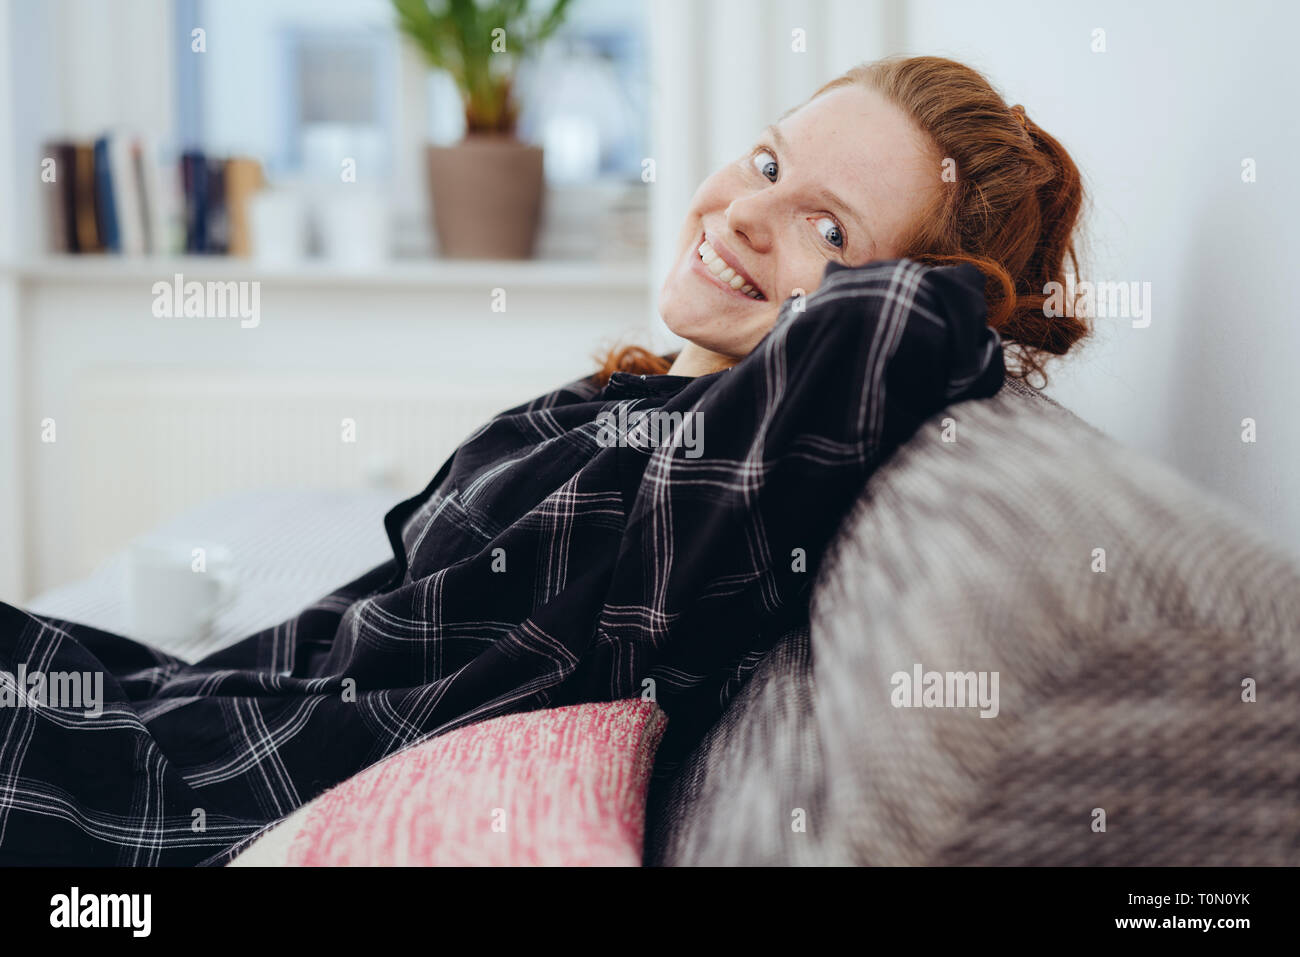 Happy friendly young redhead woman relaxing on a sofa turning to look at the camera with a lovely warm smile Stock Photo